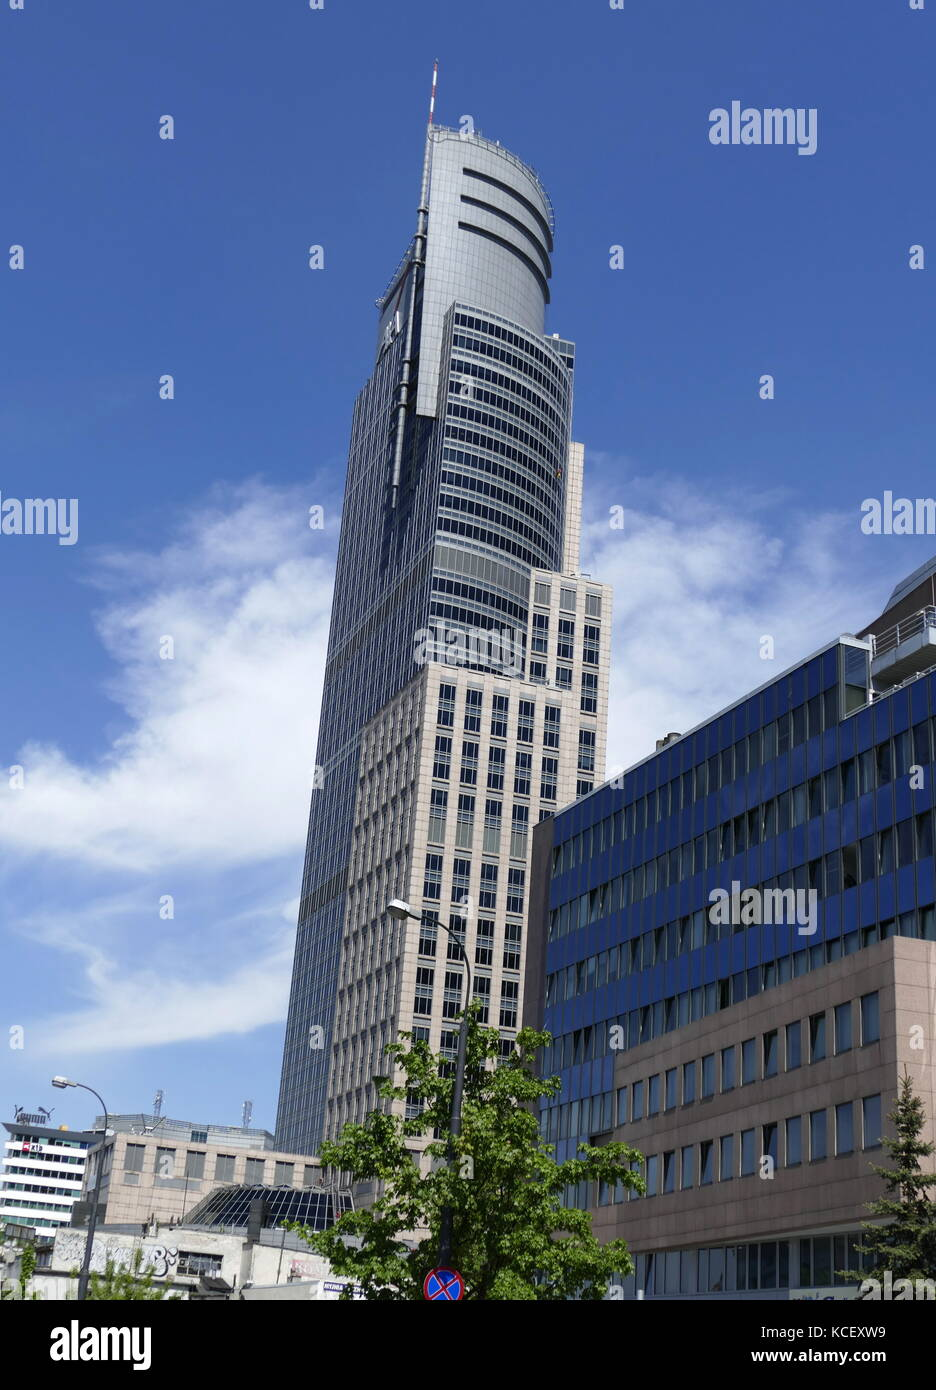 Photograph of the Warsaw Trade Tower (WTT) a skyscraper in Warsaw. It was completed in 1999. Modern skyscrapers - Stock Image